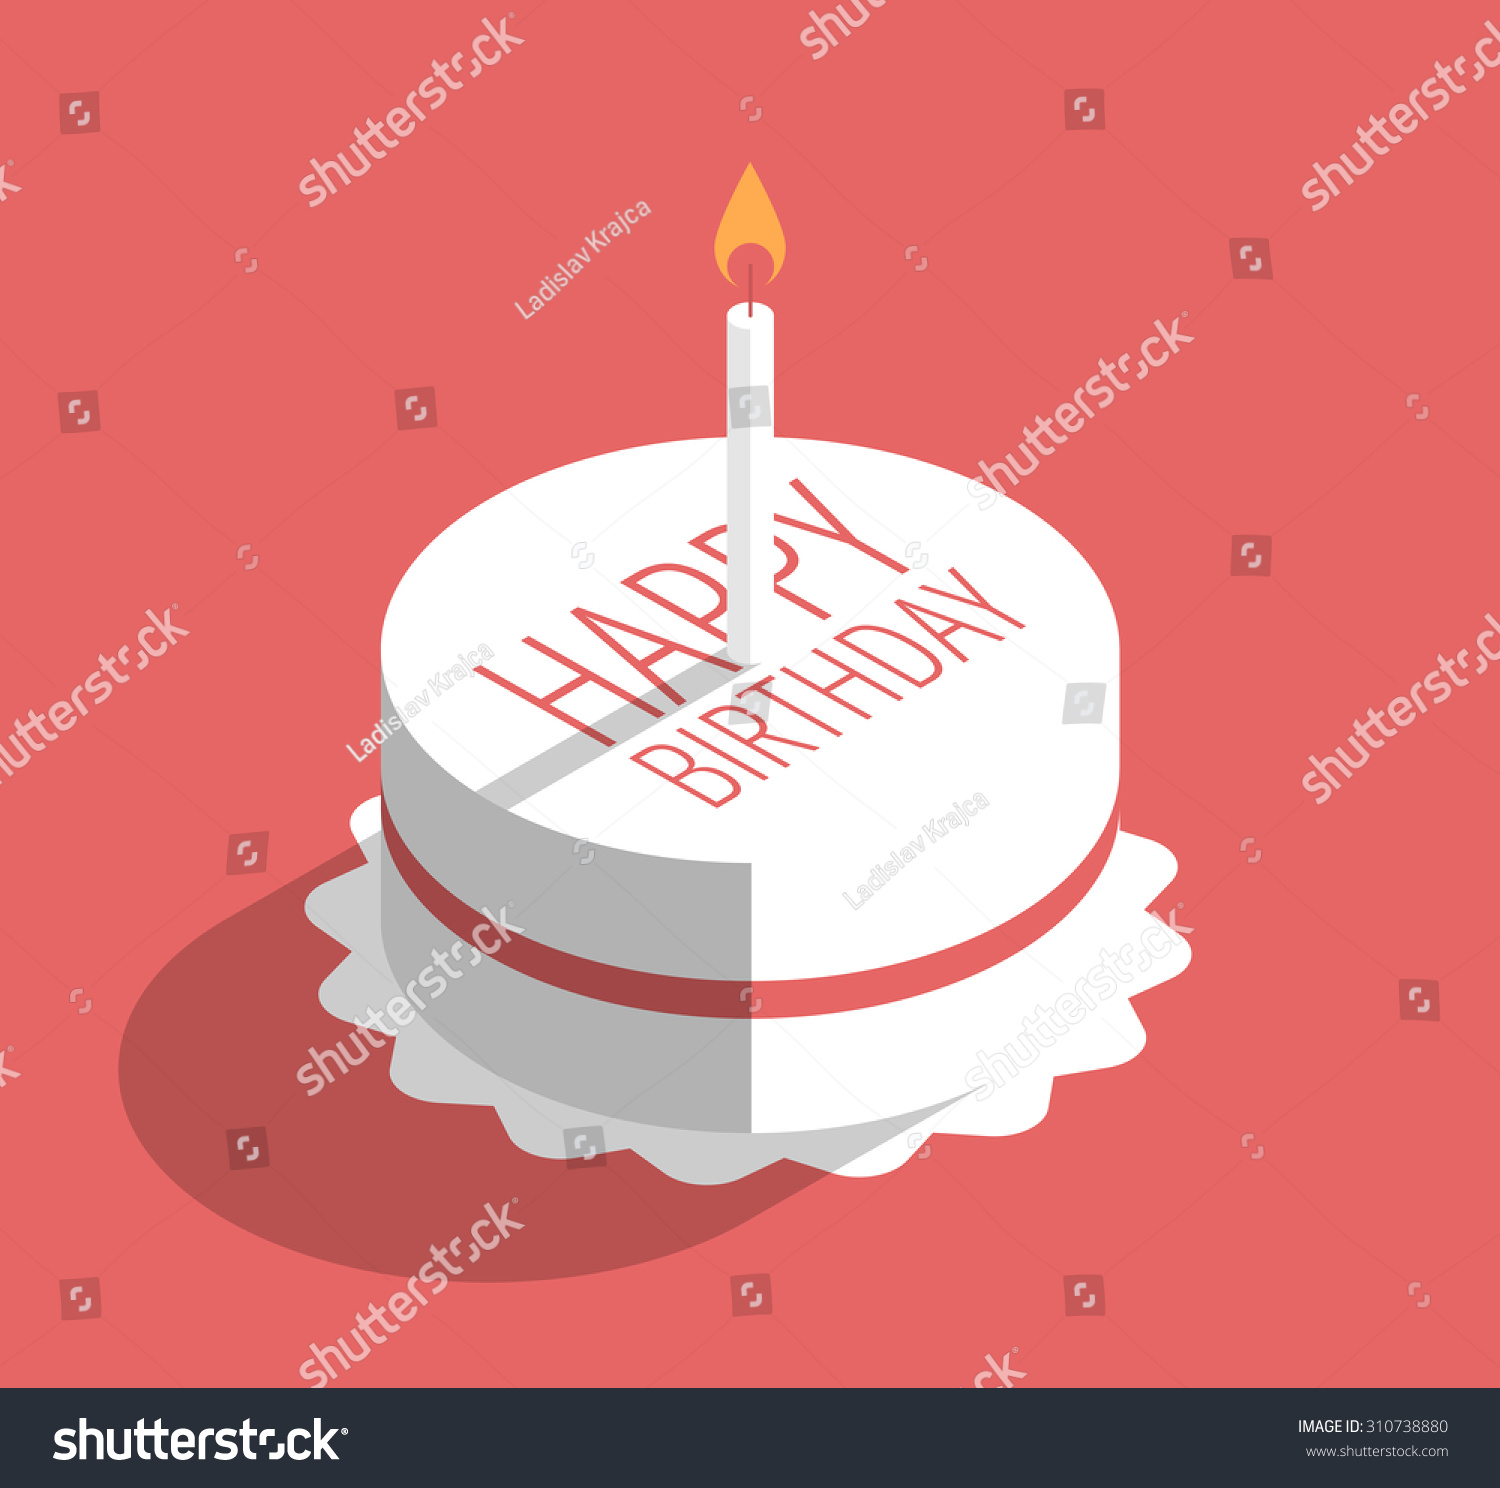 Birthday Cake Candle Vector Illustration On Stock Vector 310738880